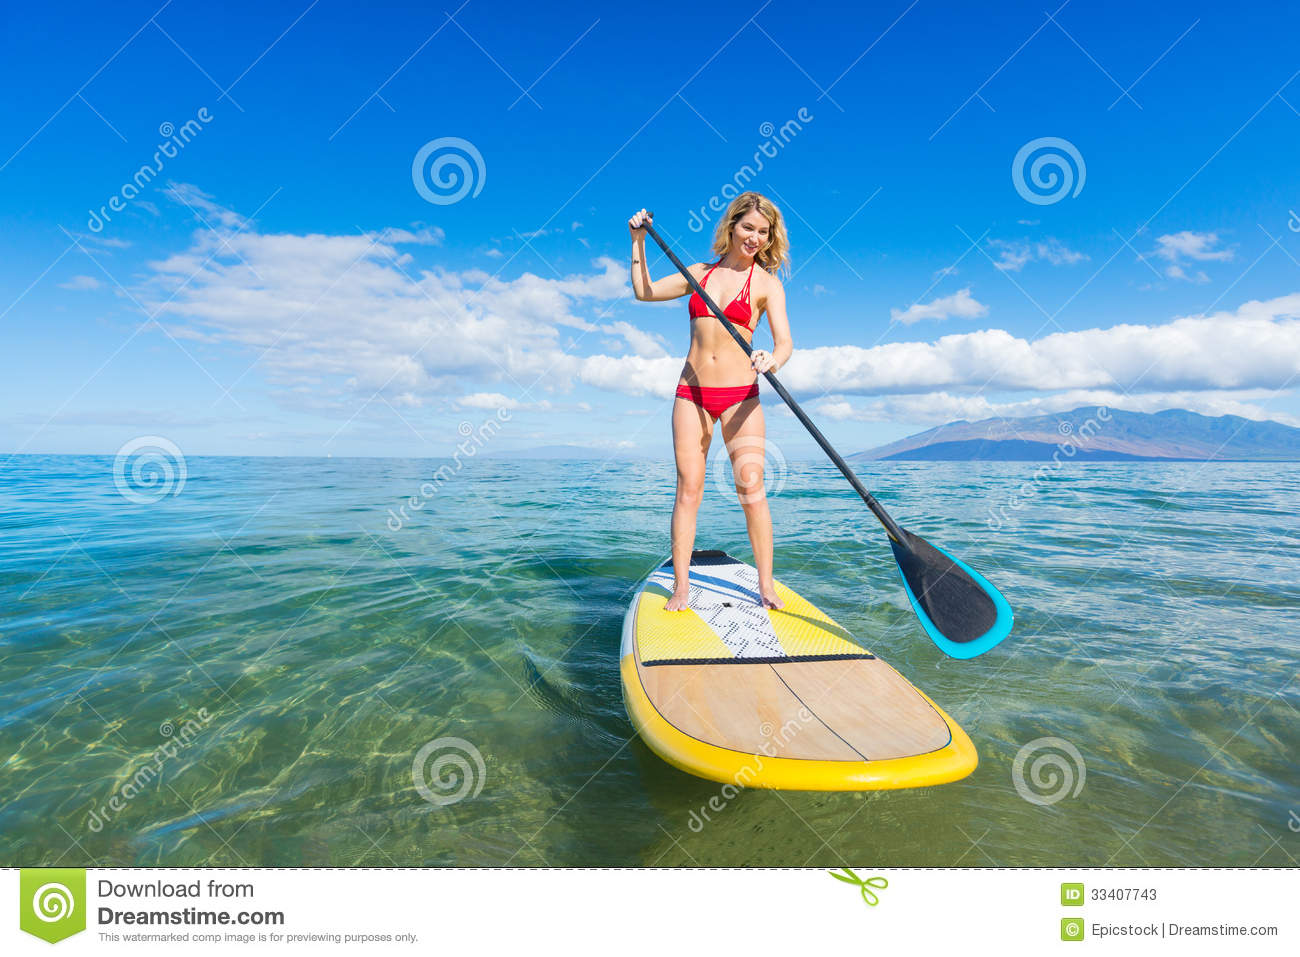 young attractive woman on stand up paddle board stock photo 80512230. Black Bedroom Furniture Sets. Home Design Ideas